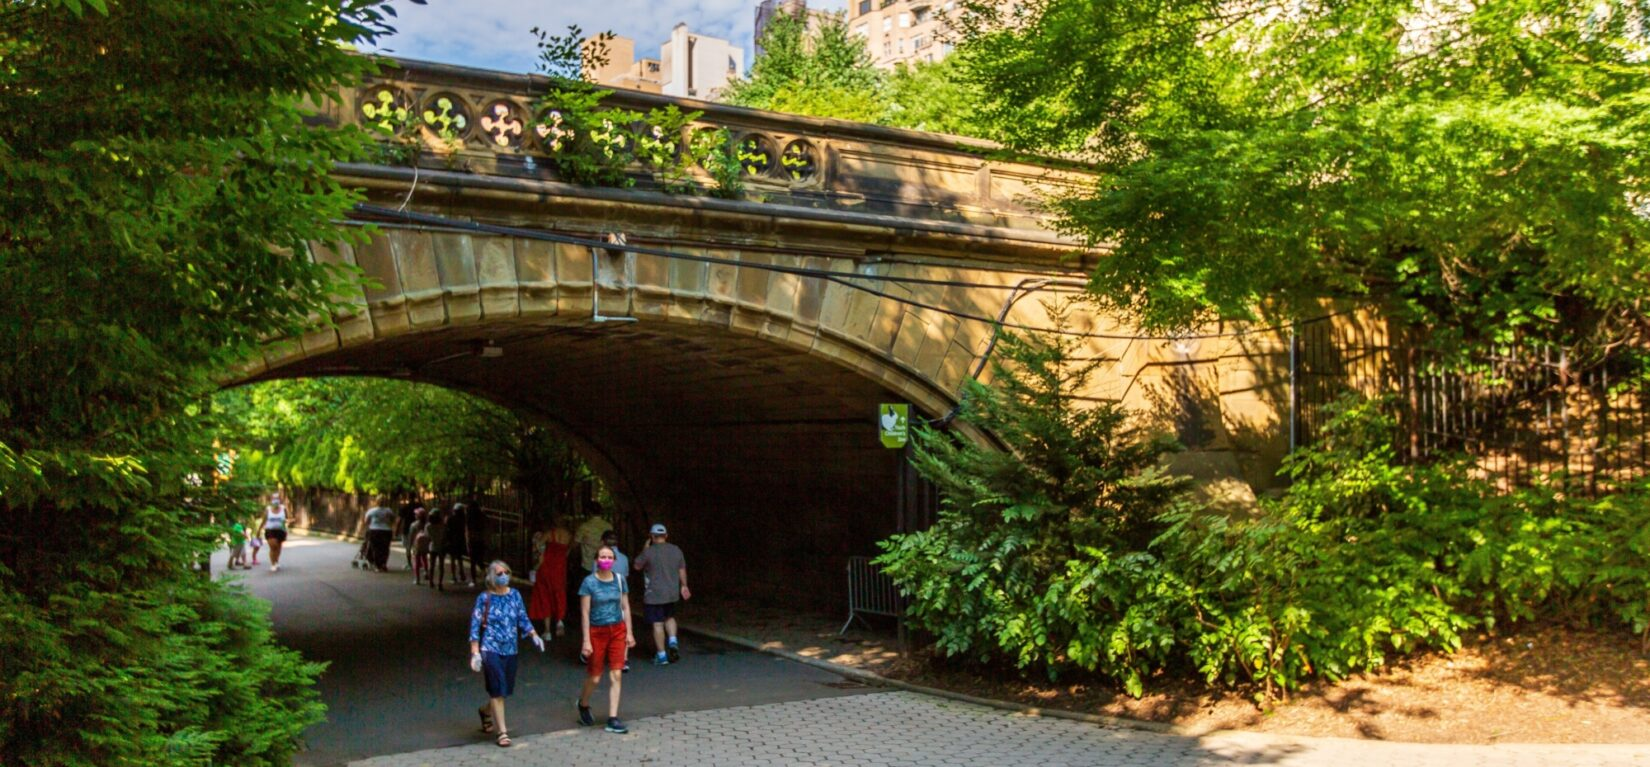 Visitors strolling beneath the Denesmouth Arch in summer